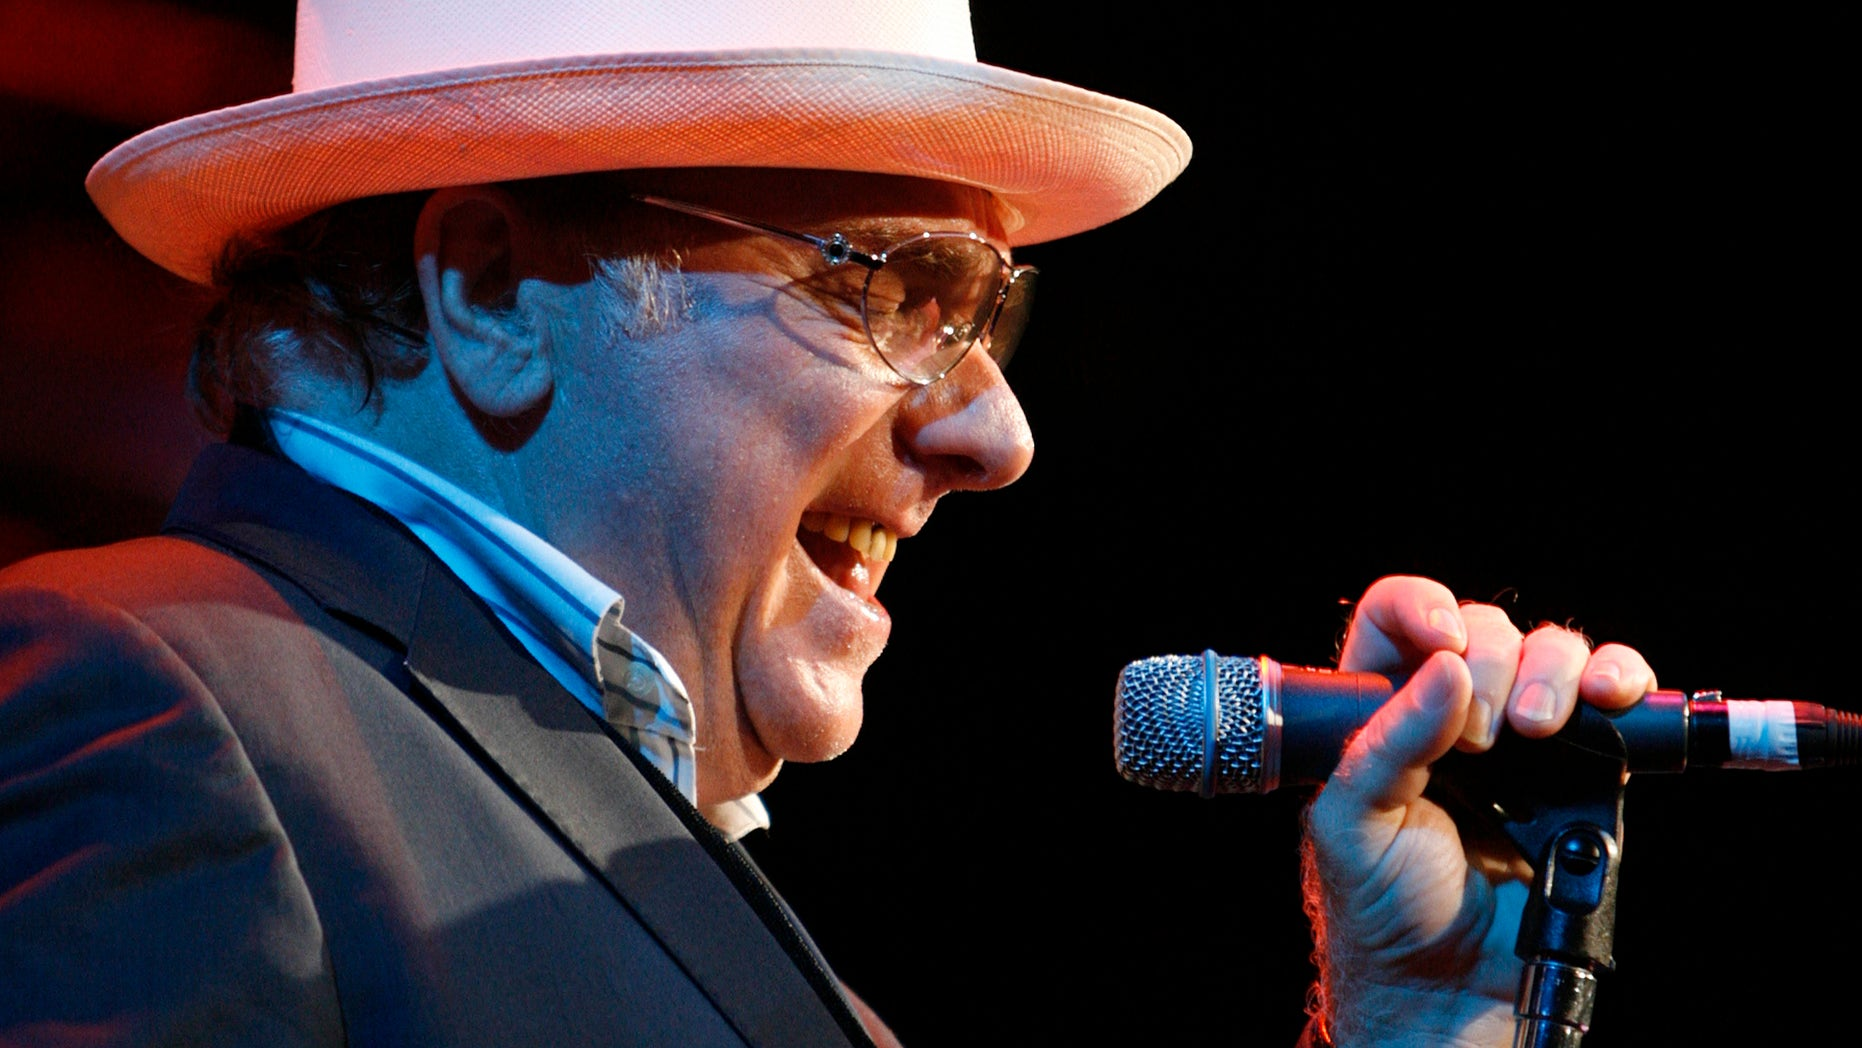 July 18, 2007. Van Morrison performs during a concert at the 41st Montreux Jazz Festival.